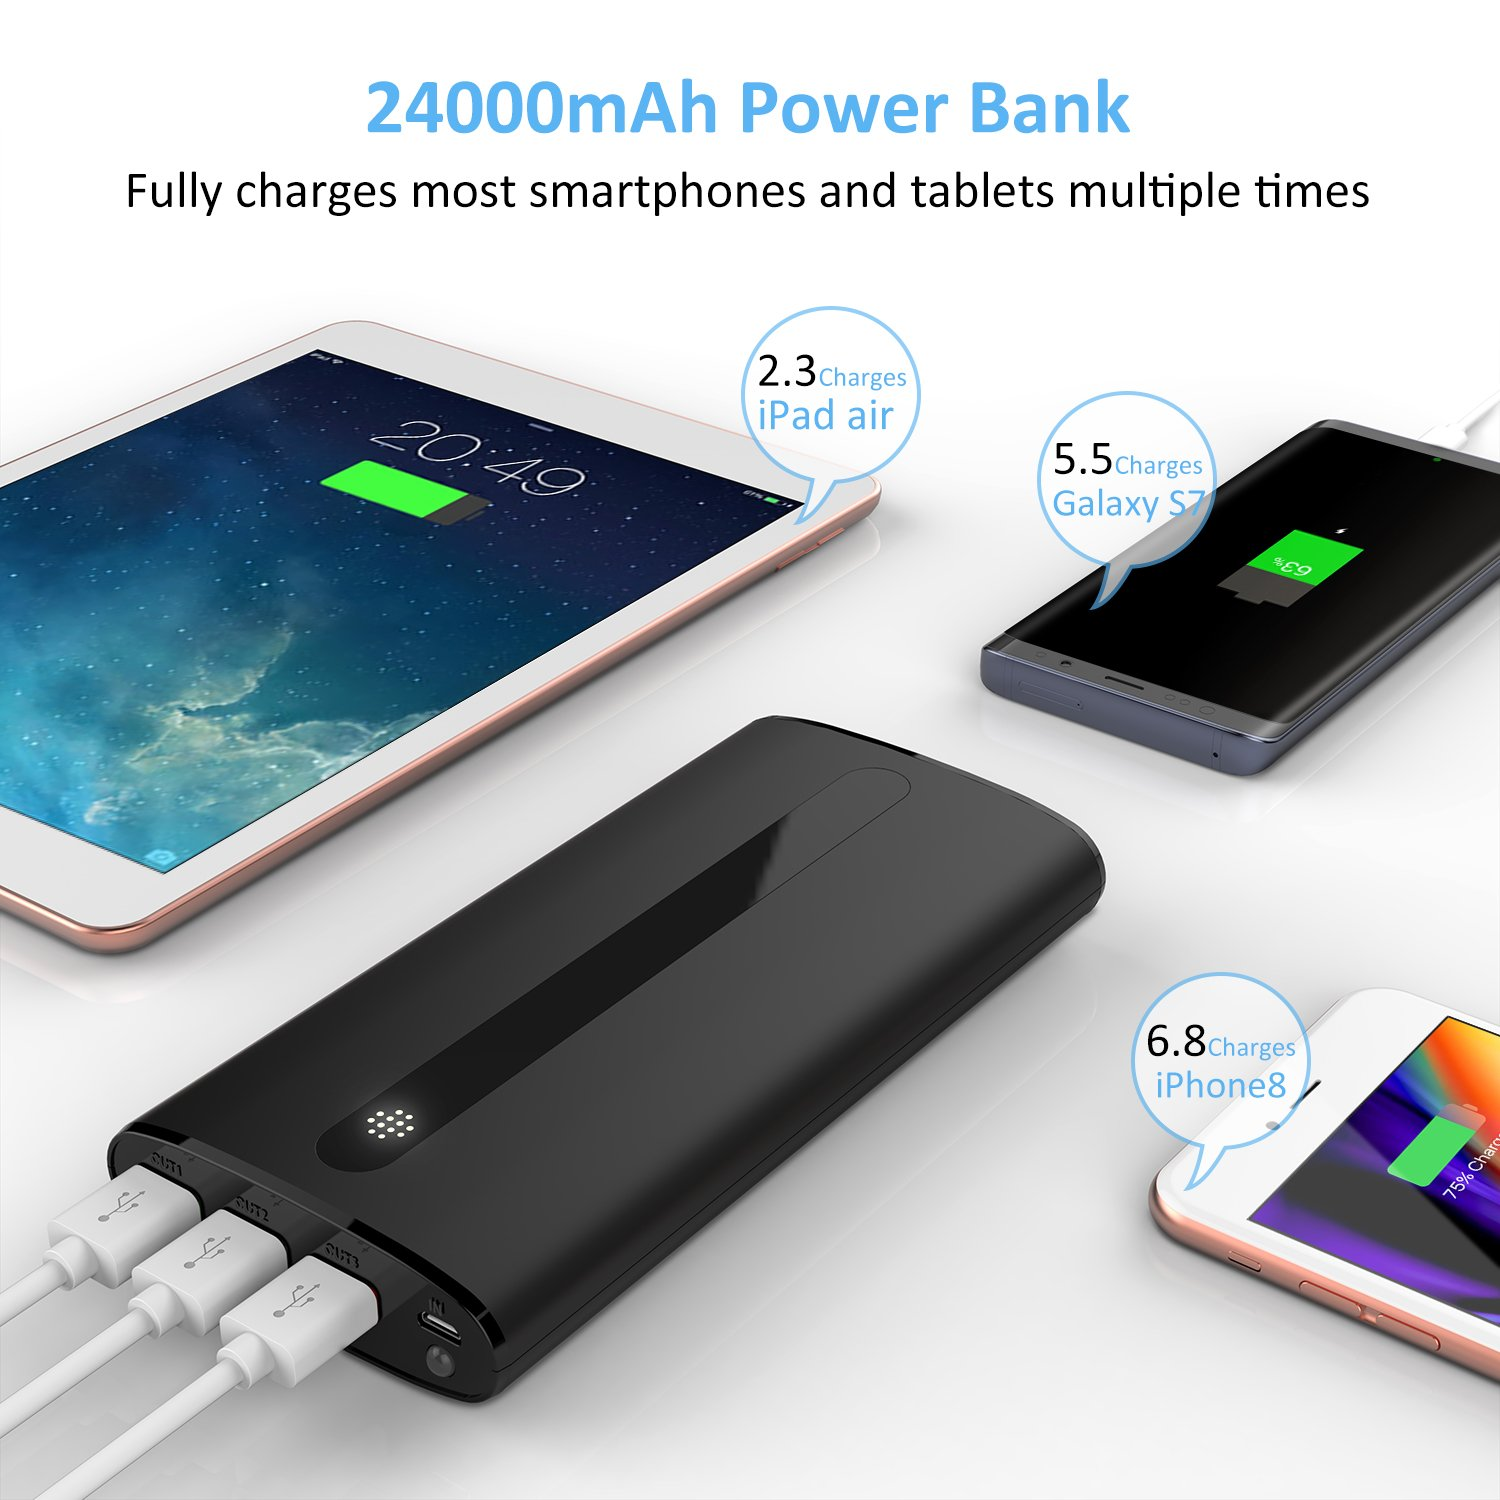 ... with 2.1A Input Port, LED Lights and 3 Charging Ports for iPhone, iPad,  Android, Samsung Galaxy and Other Devices, Black: Amazon.co.uk: Electronics